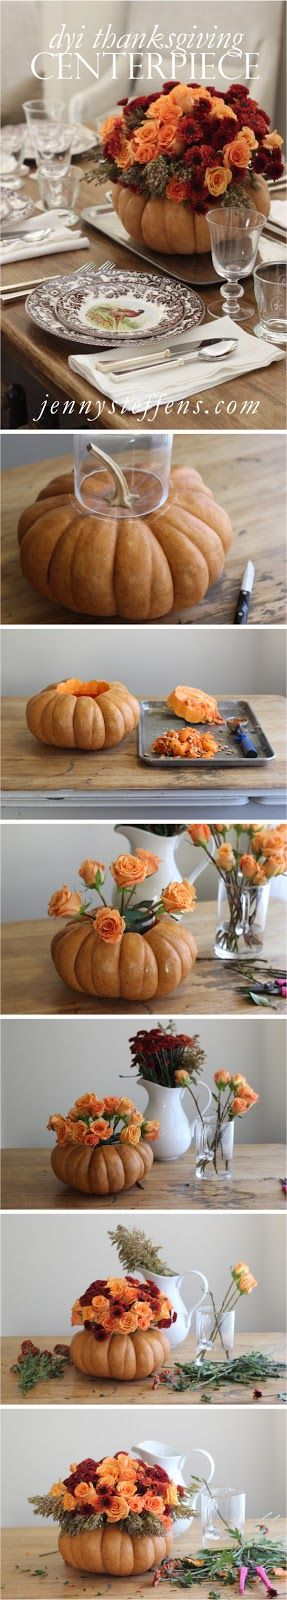 DIY Step-by-Step Rose & Mum Centerpiece in a Pumpkin for Thanksgiving    Thanksgiving Table Setting & Centerpiece      http://jennysteffens.blogspot.com/2012/11/diy-thanksgiving-centerpiece-roses-mums.html: